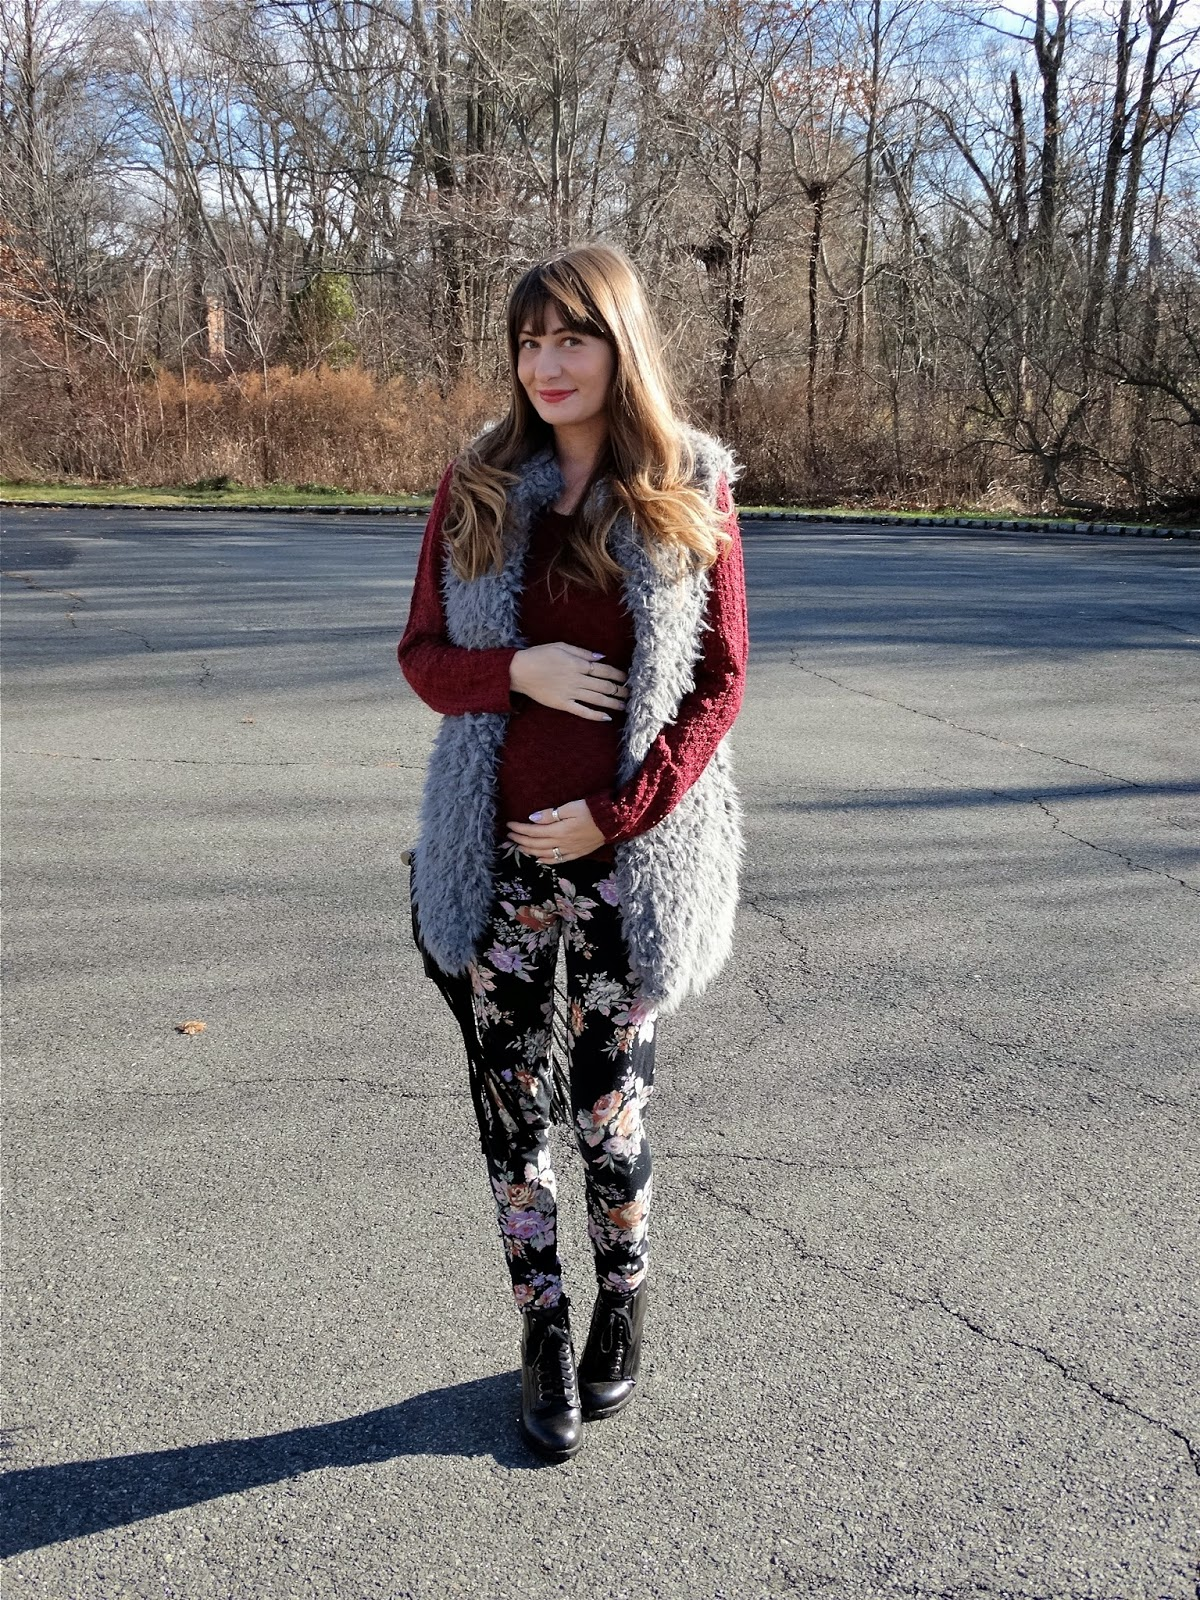 Maternity Style - Dressing your bump for winter months | House Of Jeffers | www.houseofjeffers.com